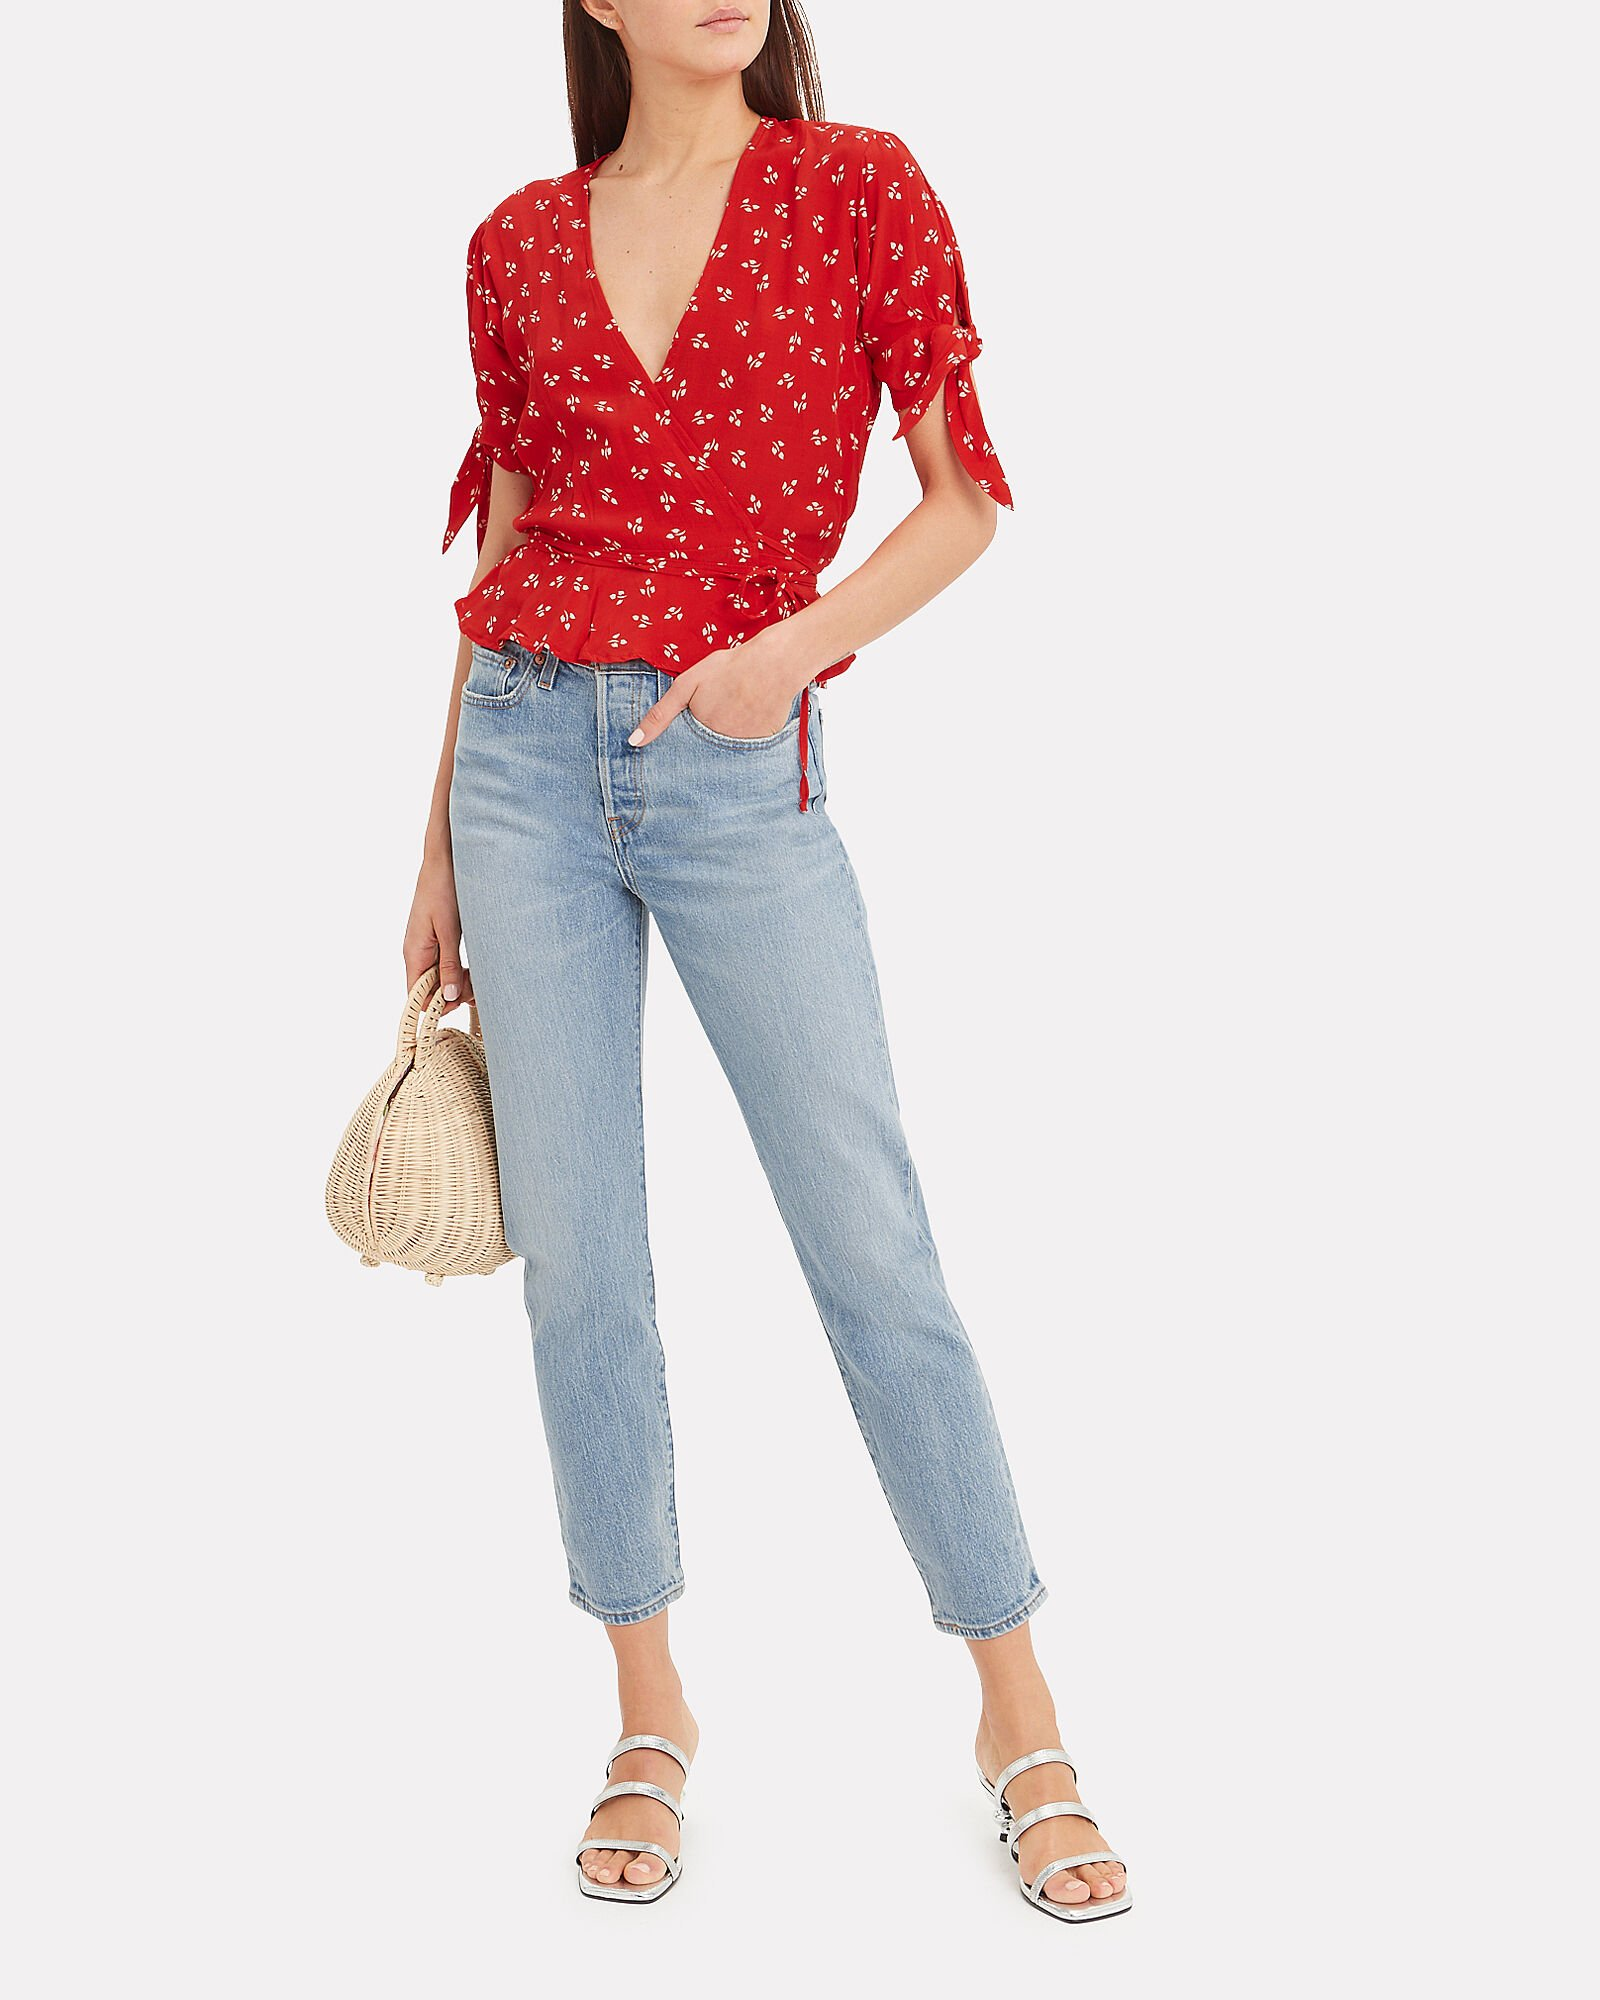 Lucy Floral Wrap Top, RED/IVORY FLORAL, hi-res